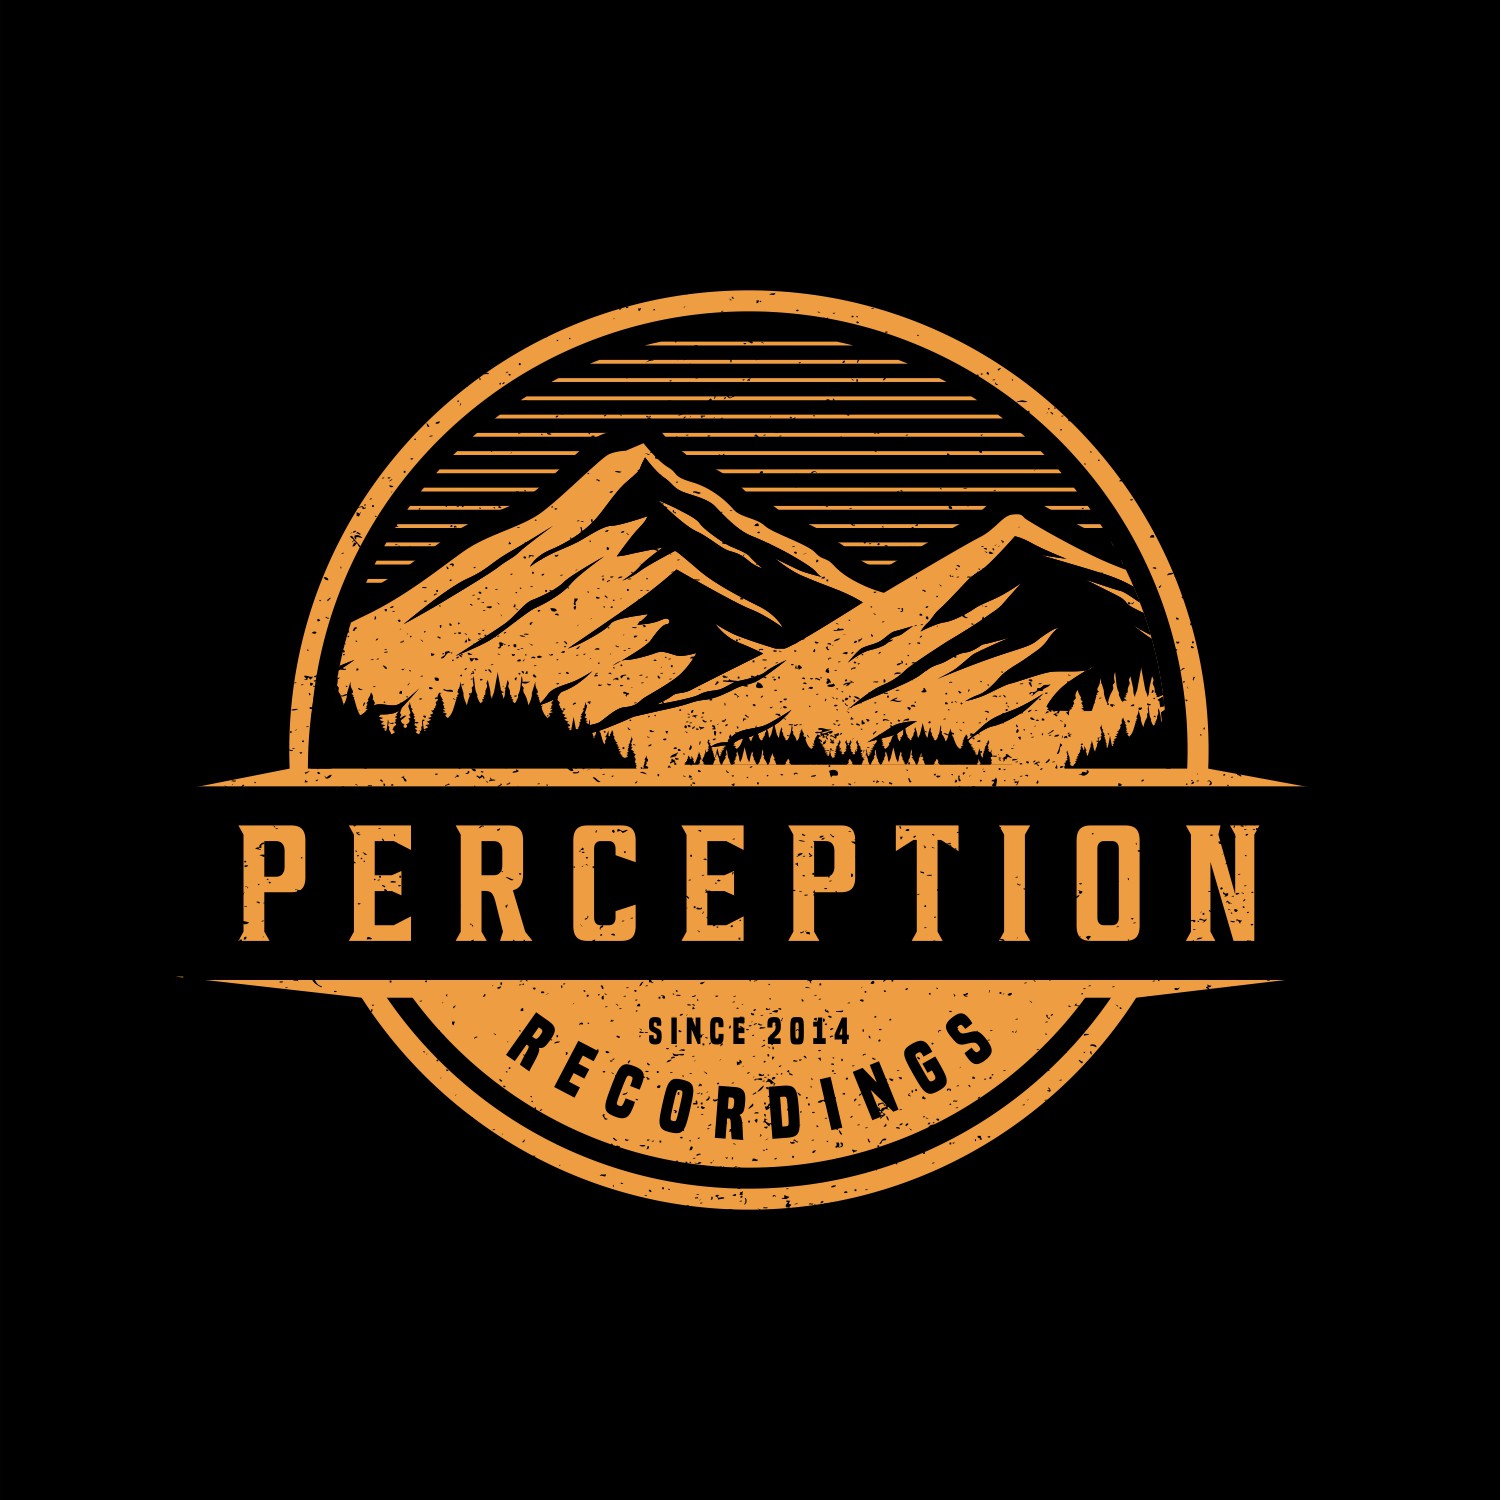 Create a modern logo for Perception Recordings